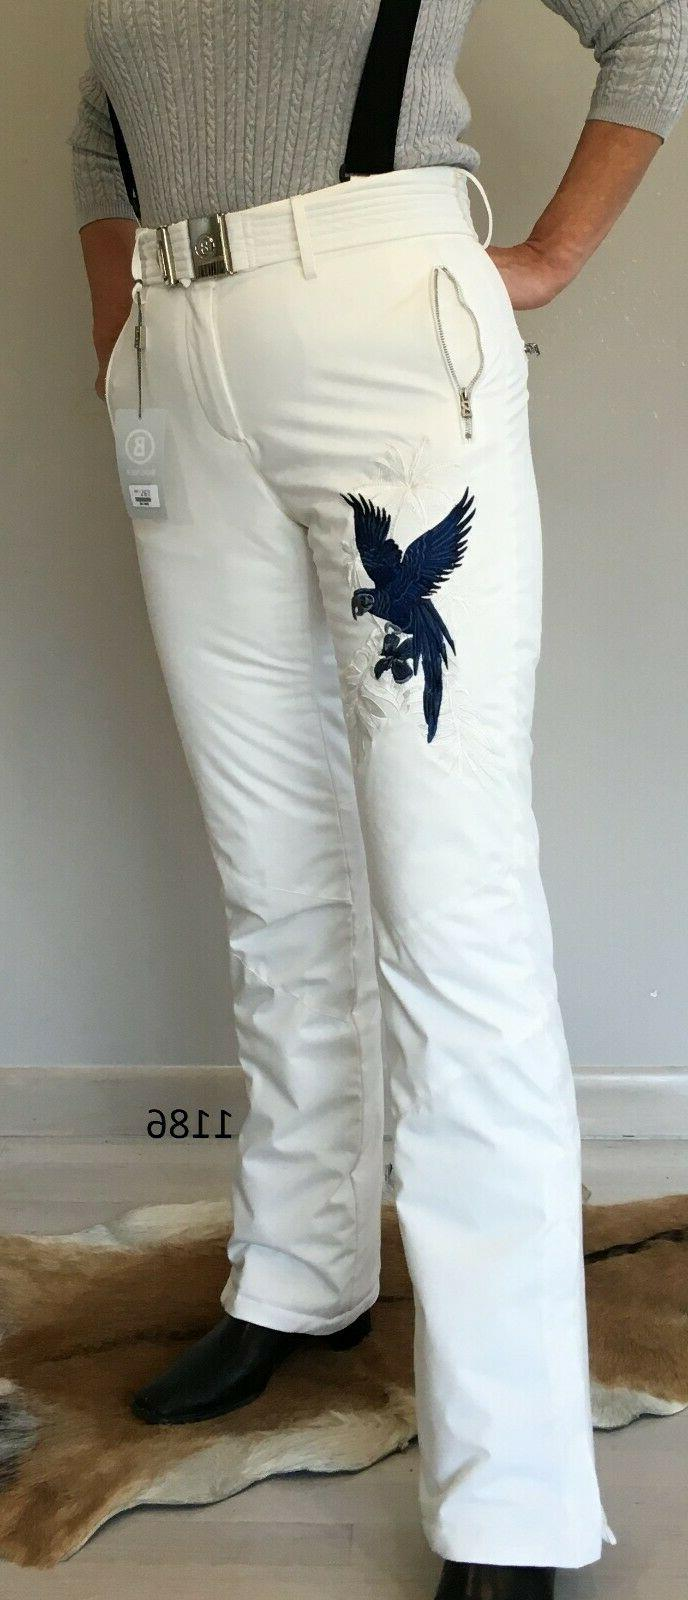 women insulated ski pants white with embroidery